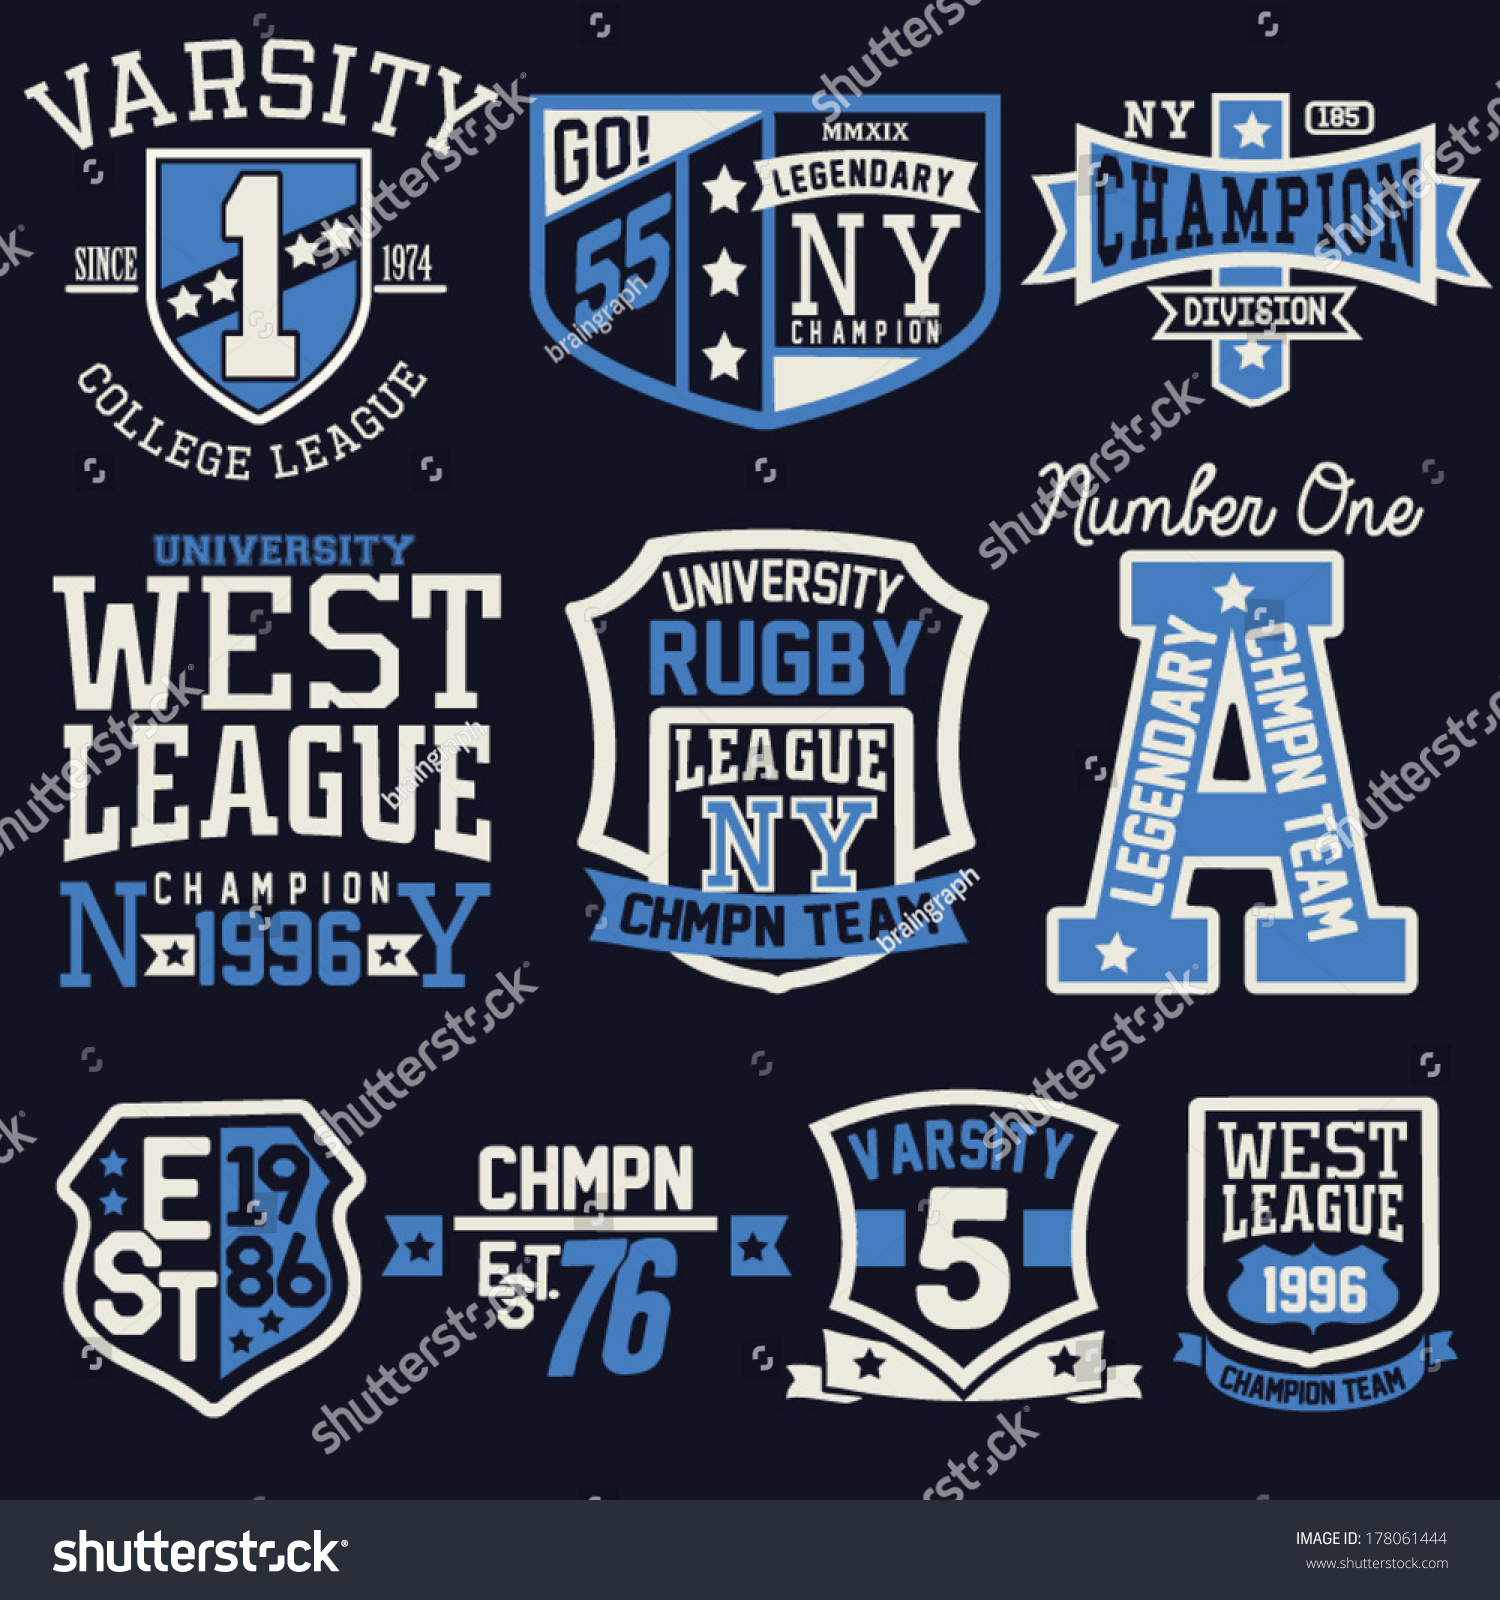 College graphic design tshirt stock vector 178061444 for College football t shirt designs